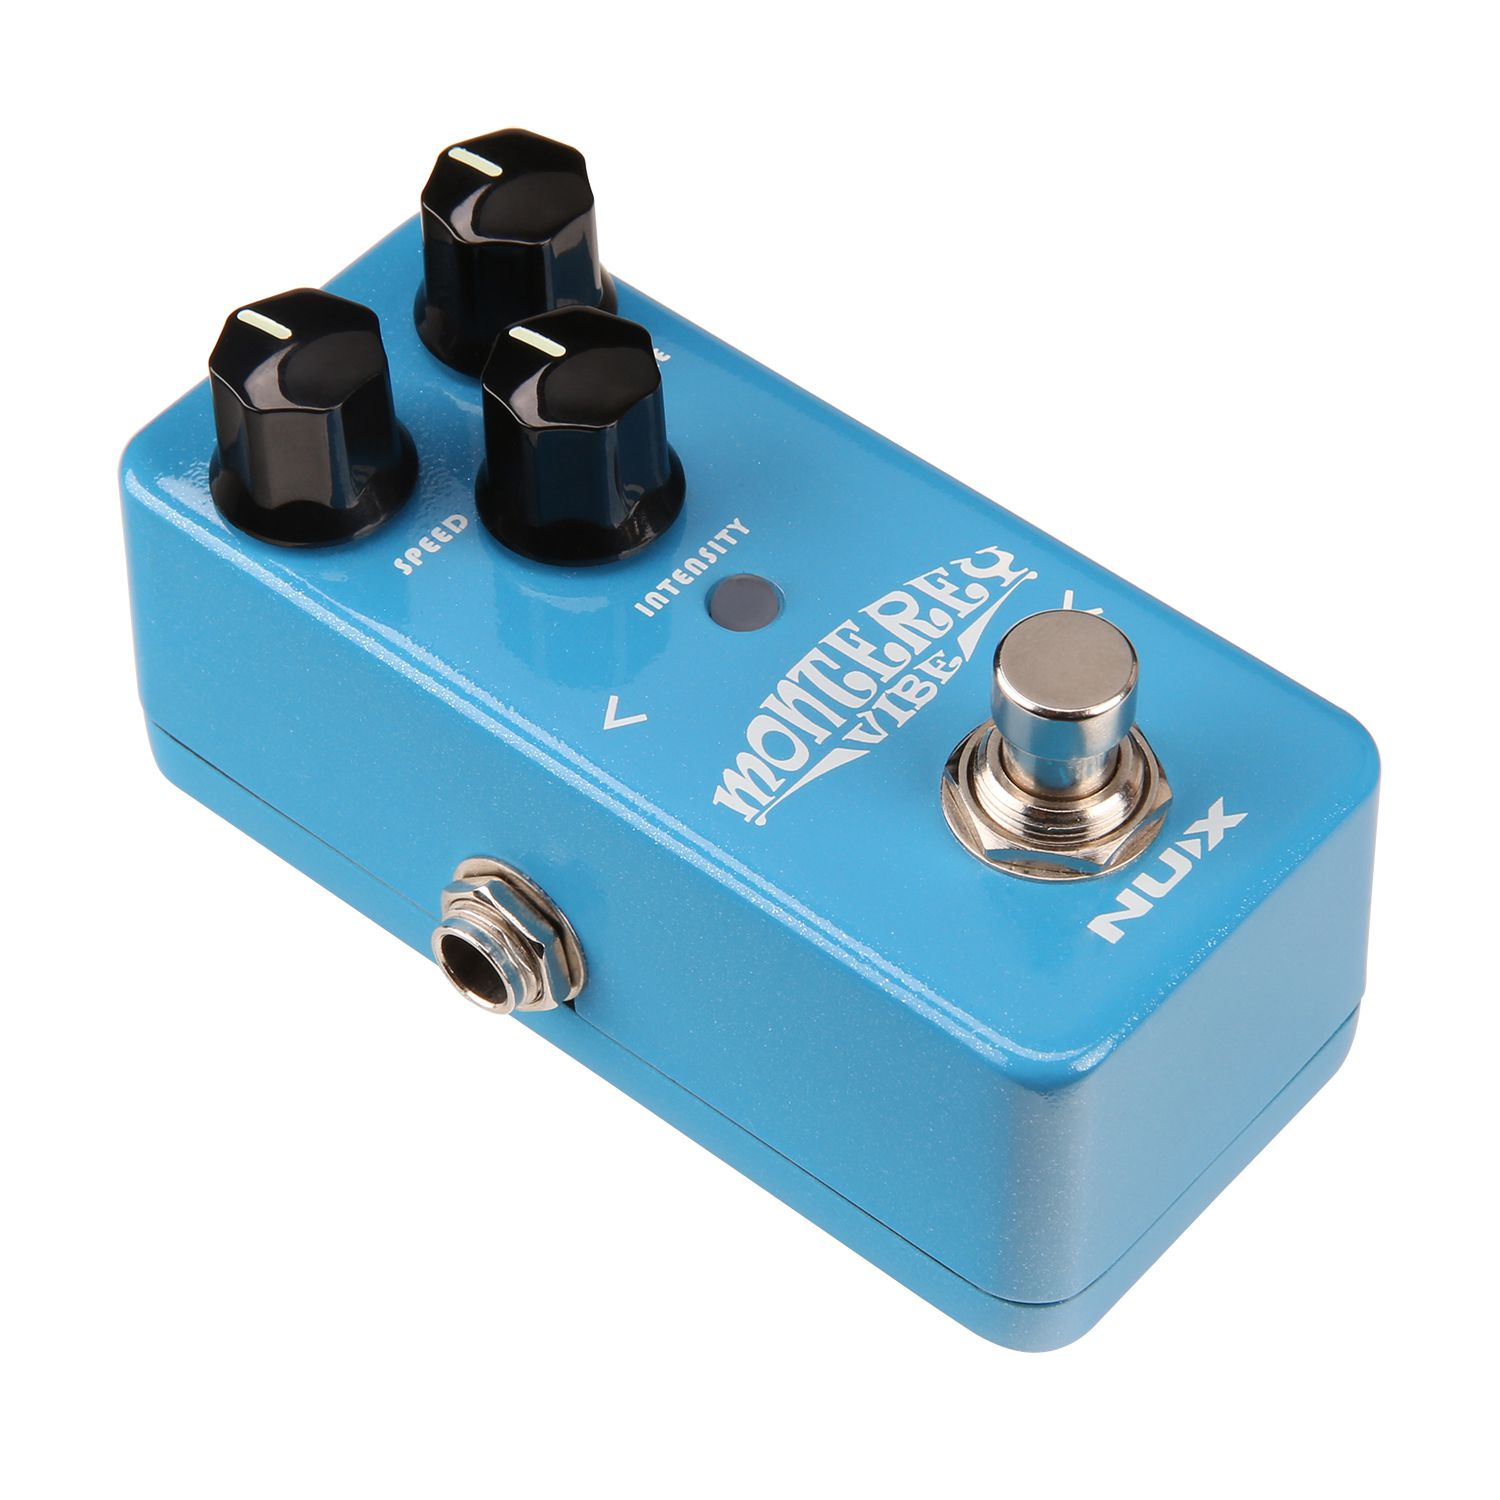 New Nux Monterey Vibe Guitar Effects Pedal Vibrato Guitarra Vibe pedal Analog Sound with Upgraded Hardware